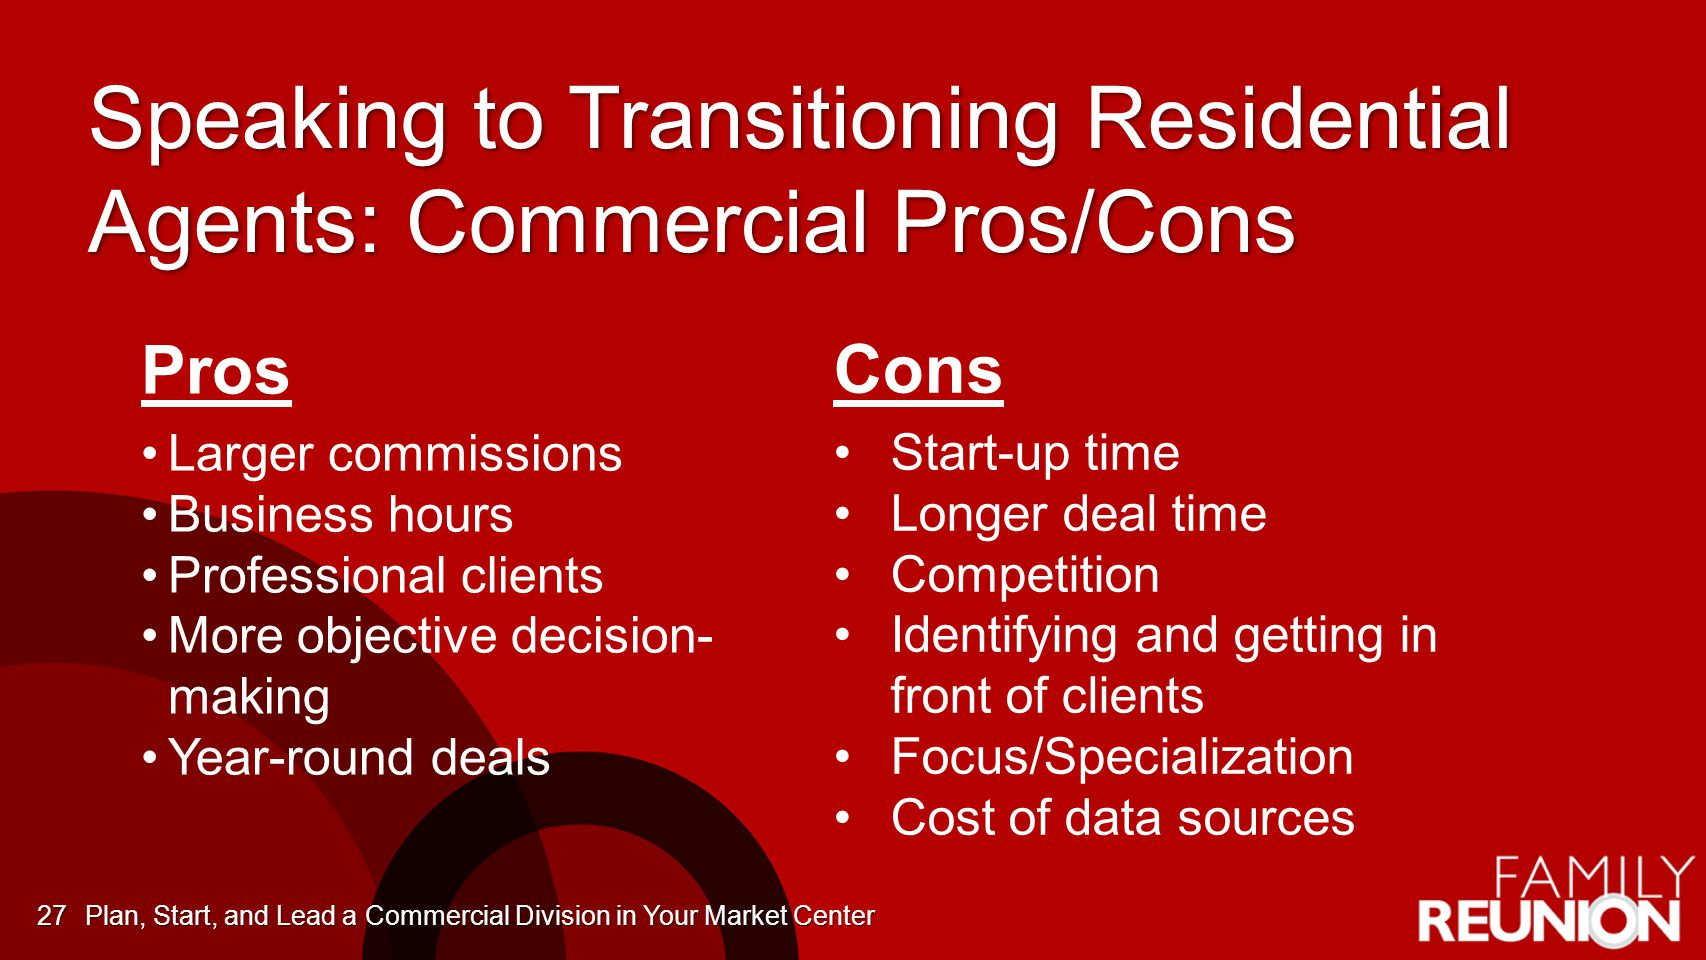 Speaking to Transitioning Residential Agents: Commercial Pros/Cons Pros Larger commissions Business hours Professional clients More objective decision